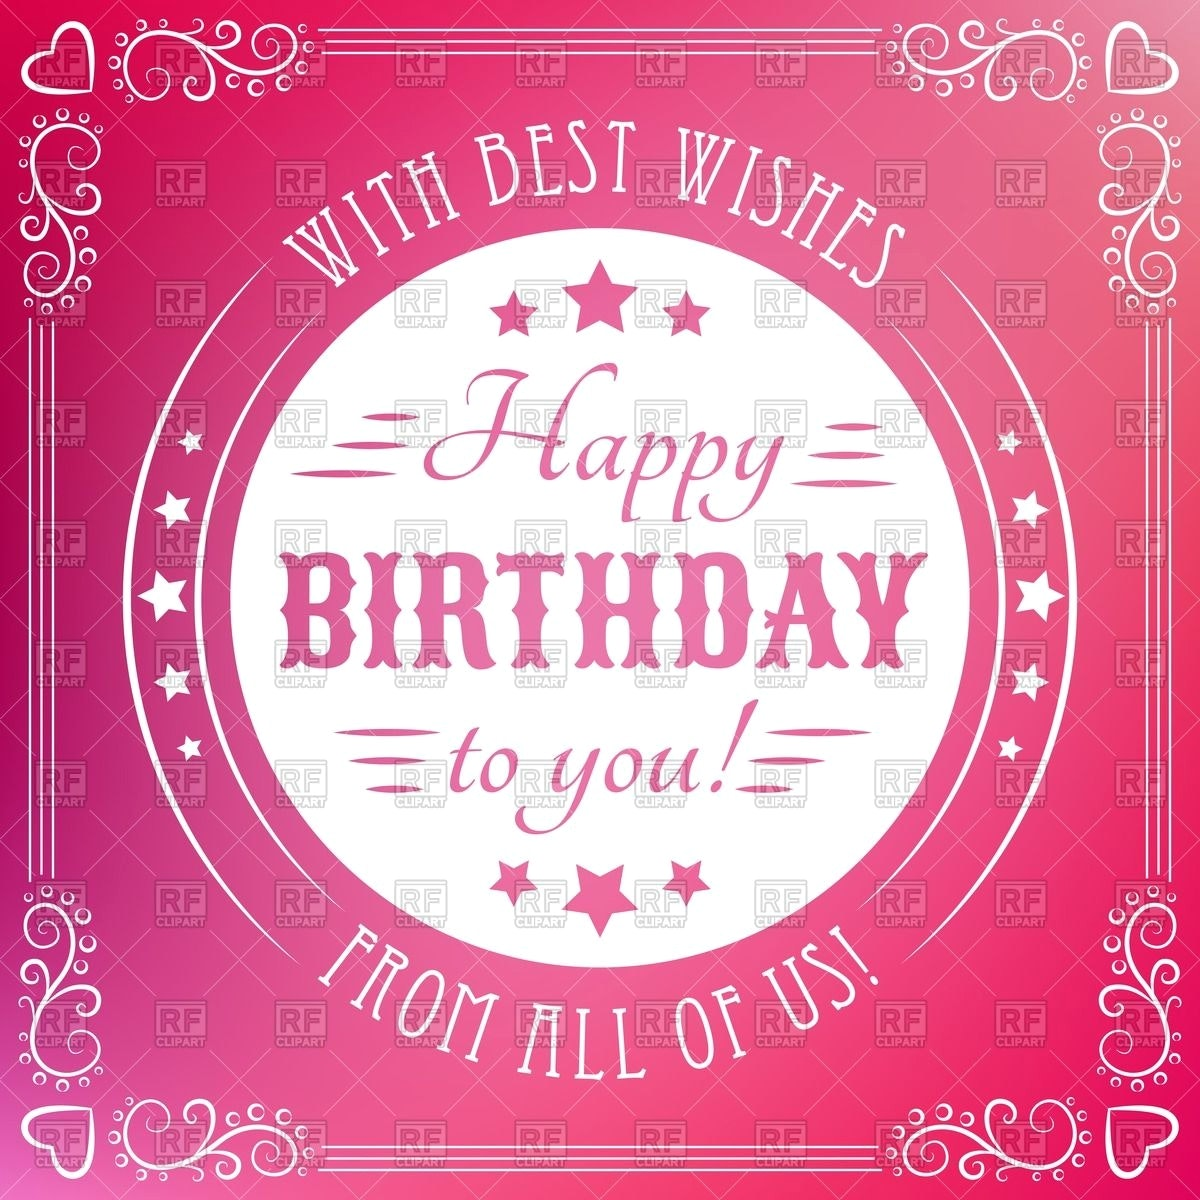 happy birthday poster ideas with pictures ; best-free-happy-birthday-posters-and-stunning-ideas-of-birthday-poster-with-round-retro-frame-vignettes-vector-10